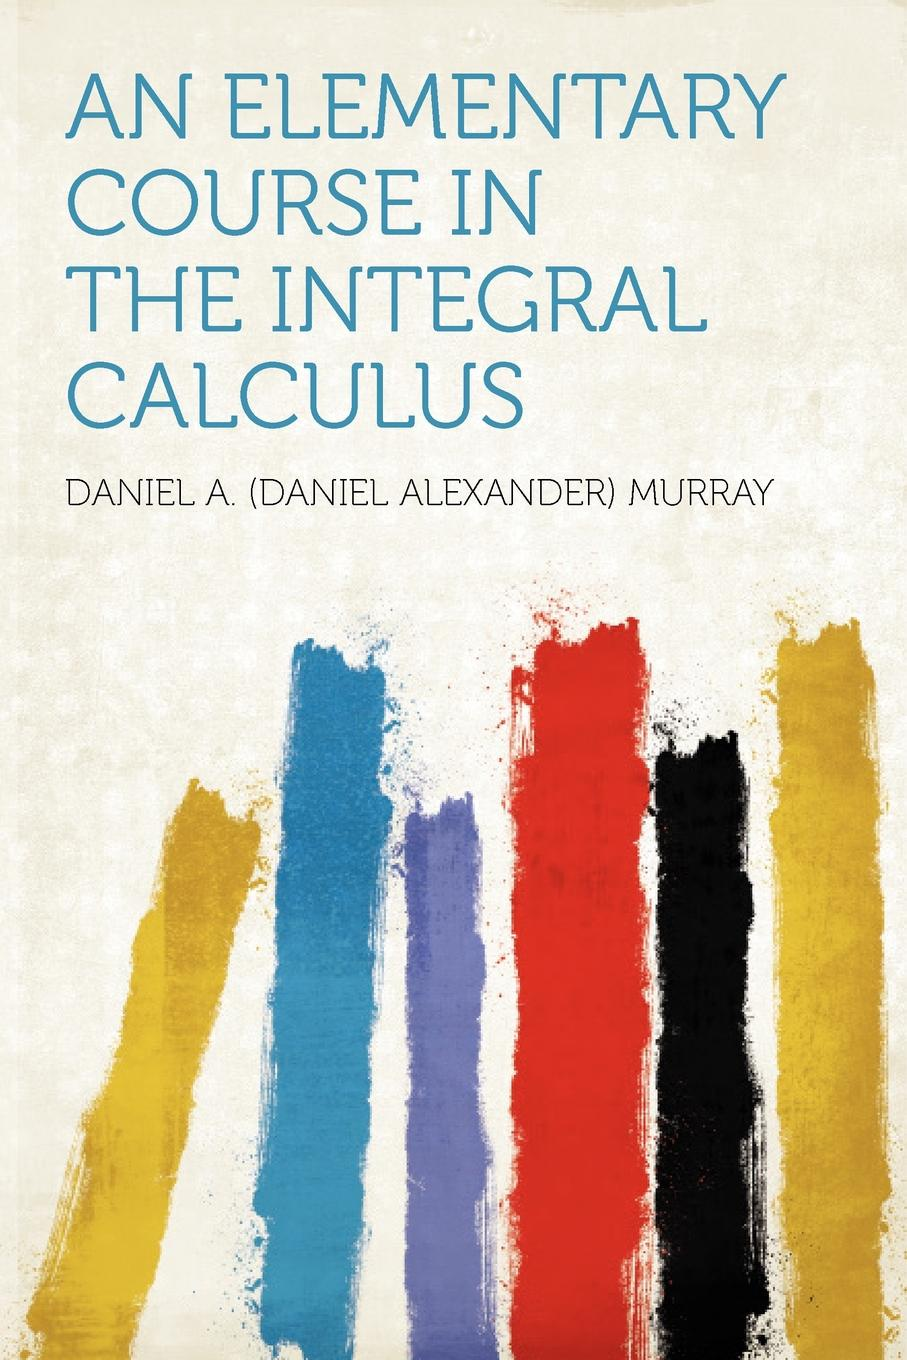 An Elementary Course in the Integral Calculus.